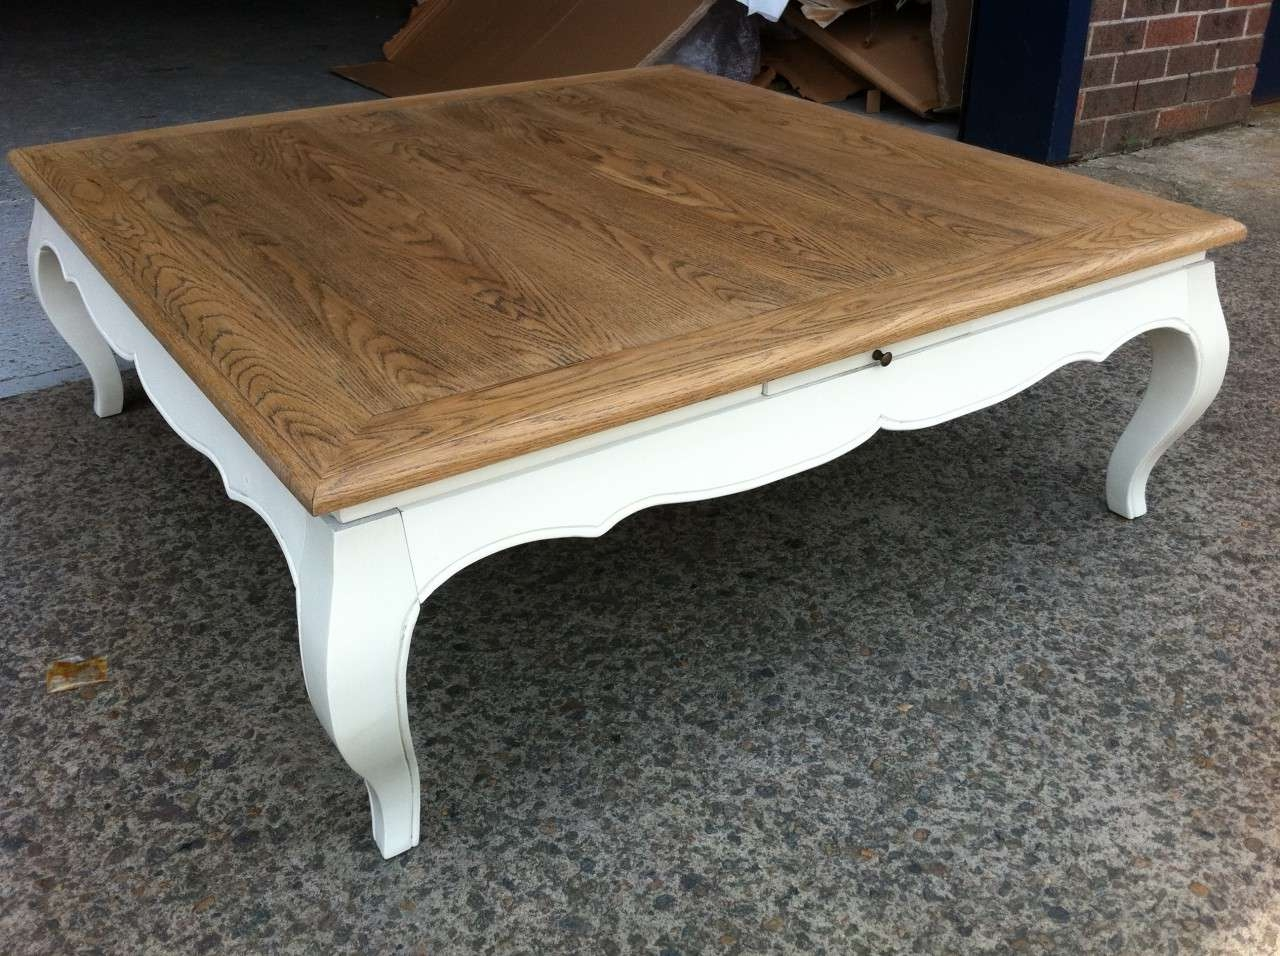 French Provincial Coffee Table – Writehookstudio Regarding Widely Used French Country Coffee Tables (View 16 of 20)